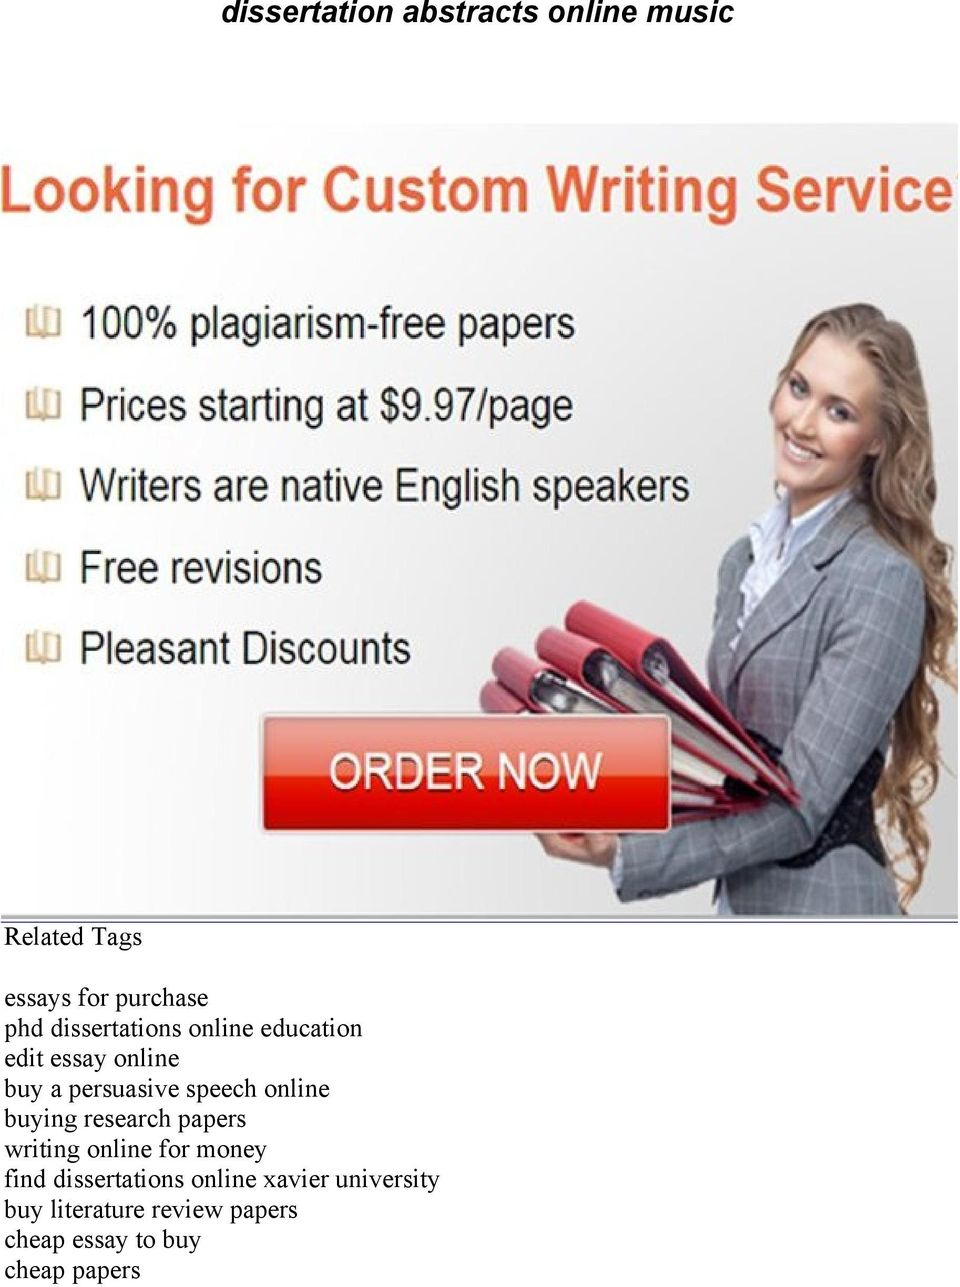 online buying research papers writing online for money find dissertations